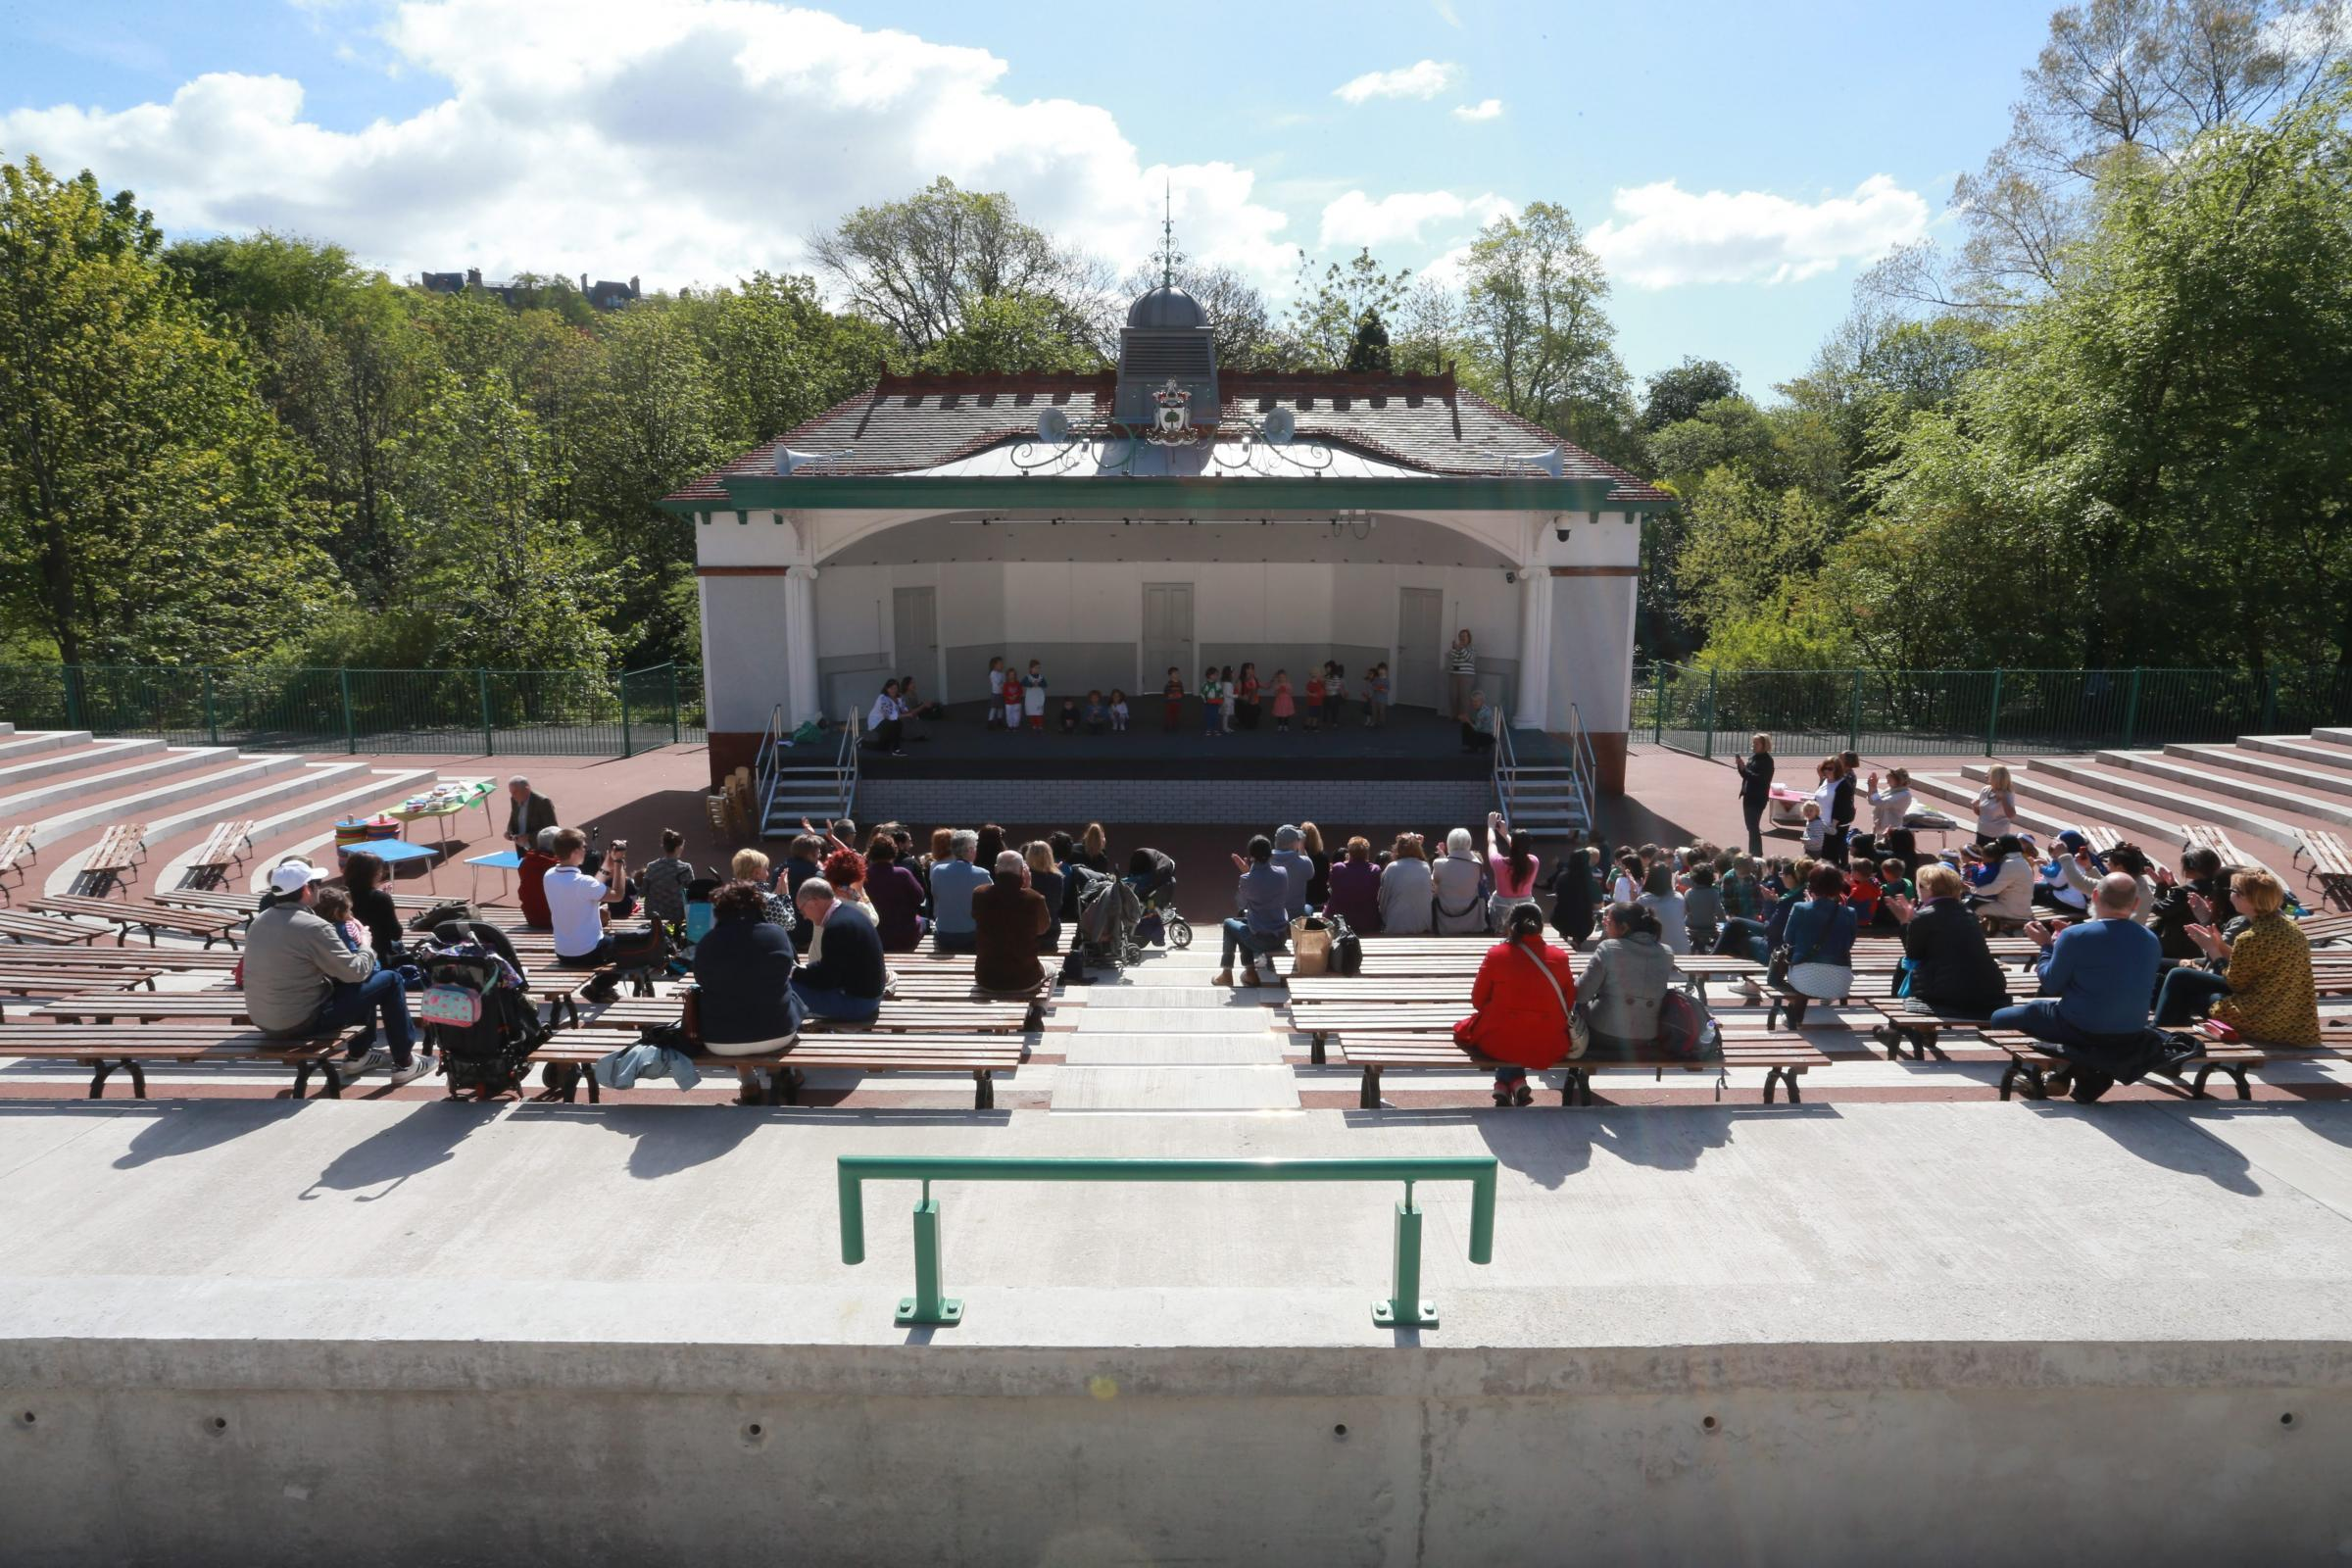 'Kick in the tadger': West End residents' fury as Kelvingrove Bandstand gigs given green light